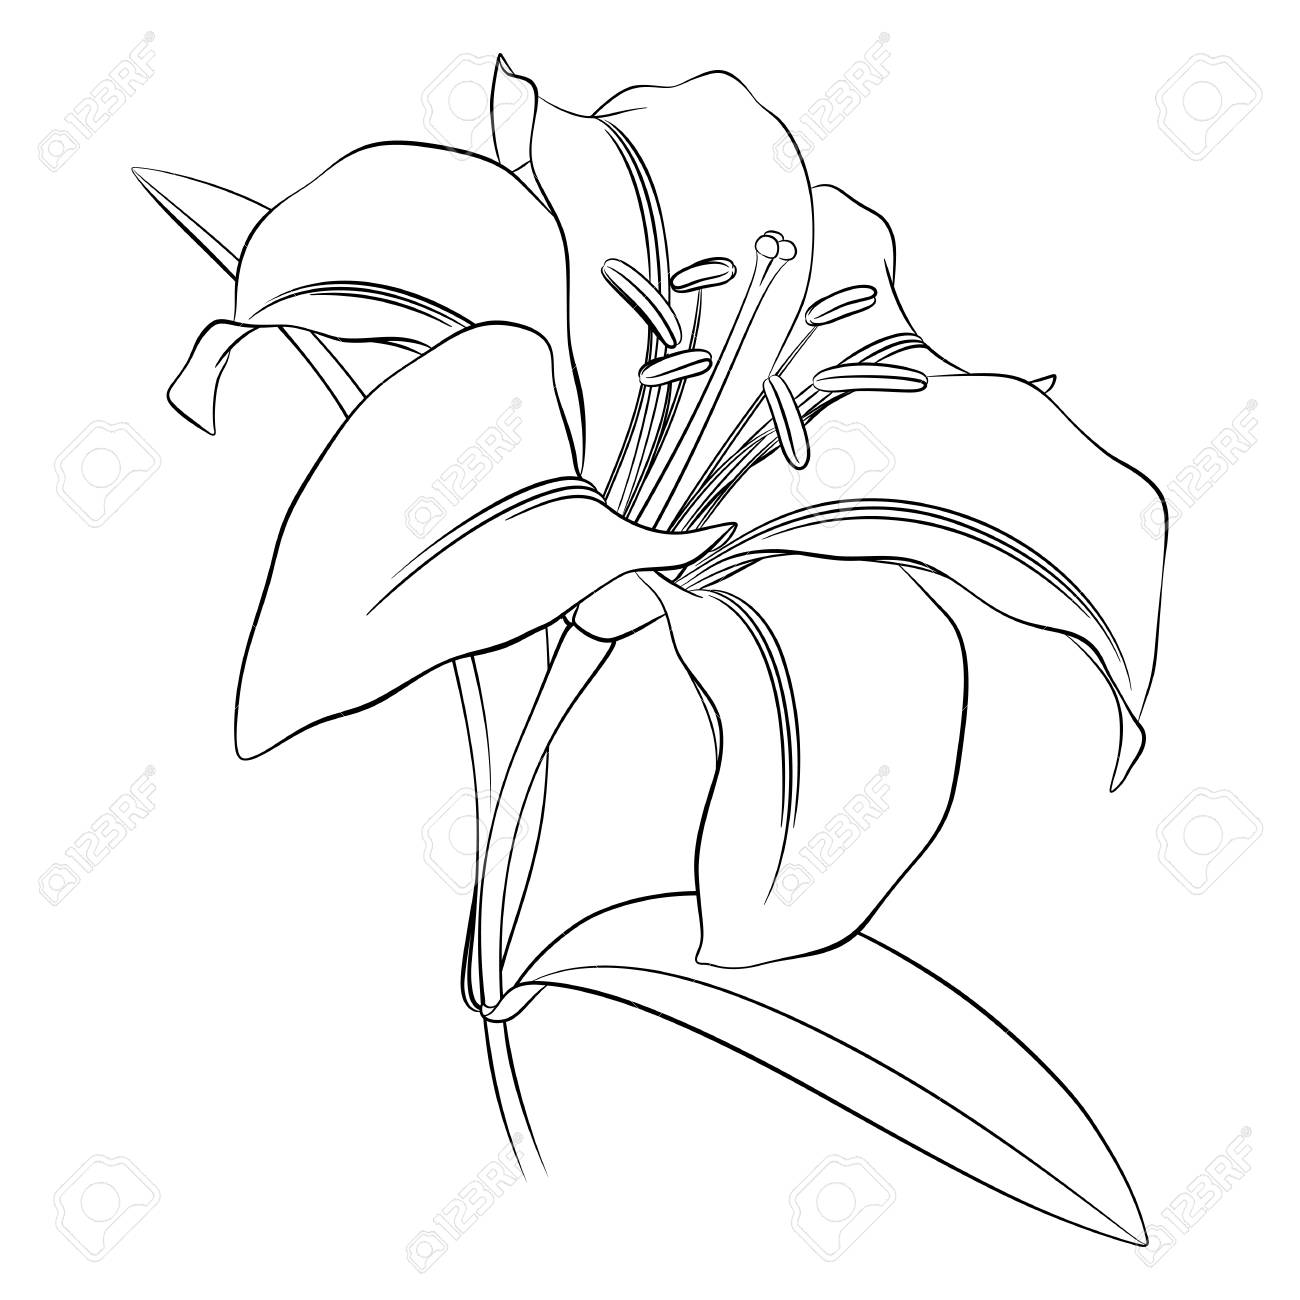 Black Outline Of A Lily Flower On A White Background For Coloring